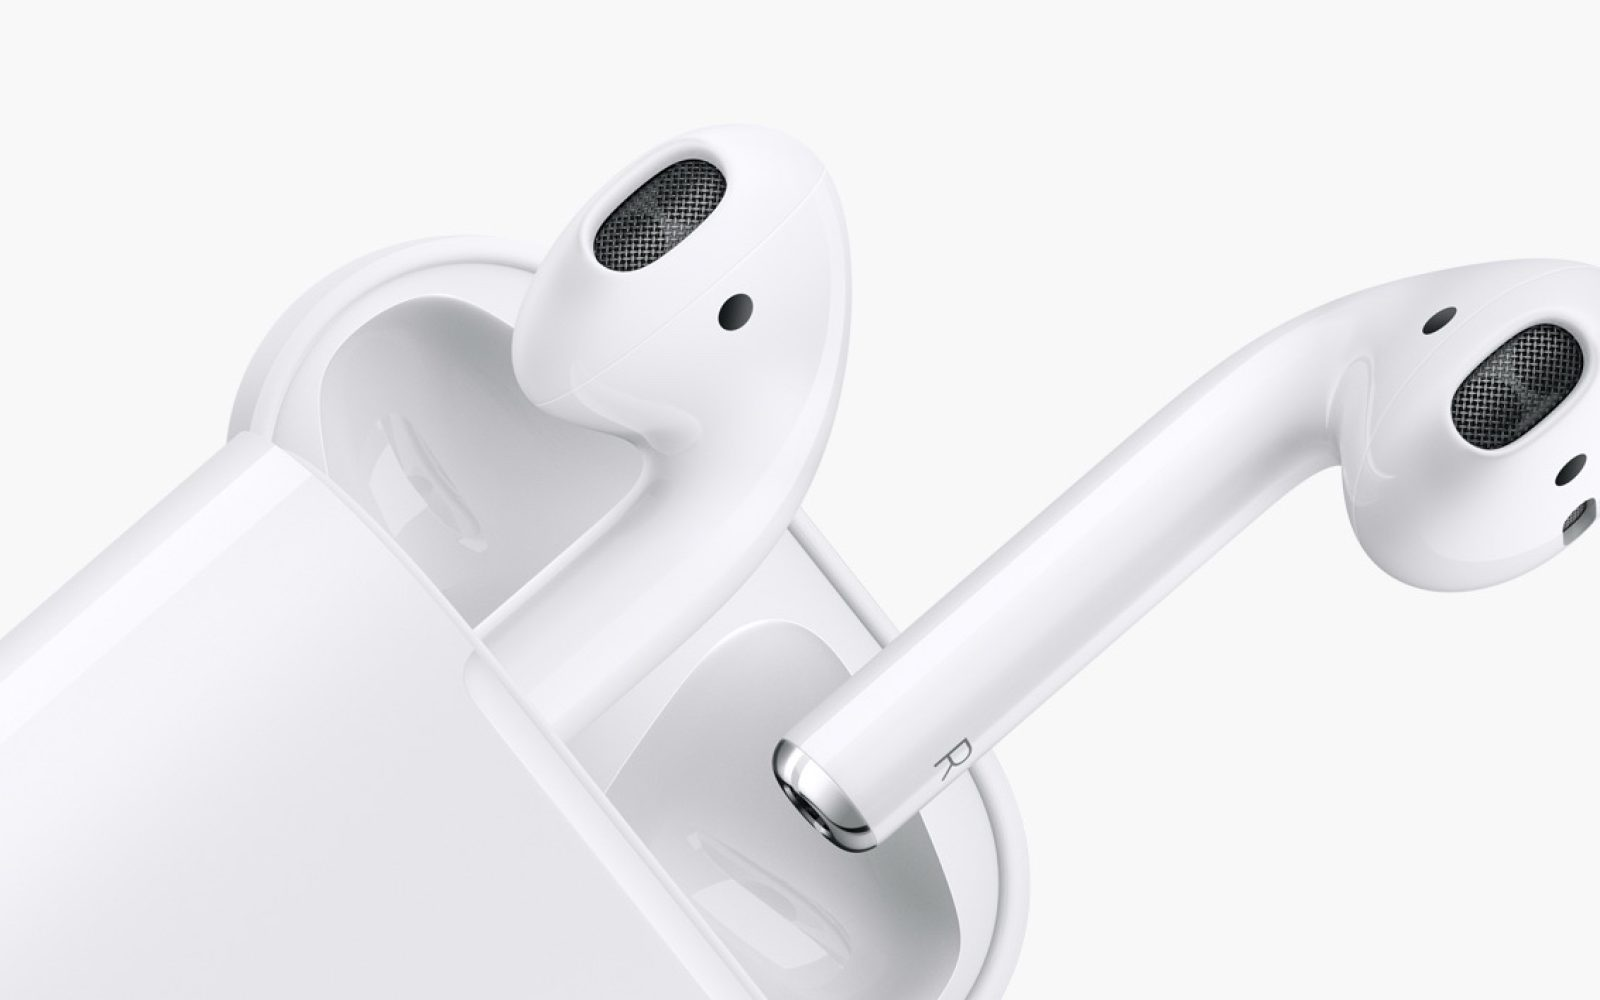 beec572a03e PSA: Best Buy is now selling AirPods, but with the same January shipping  window as Apple